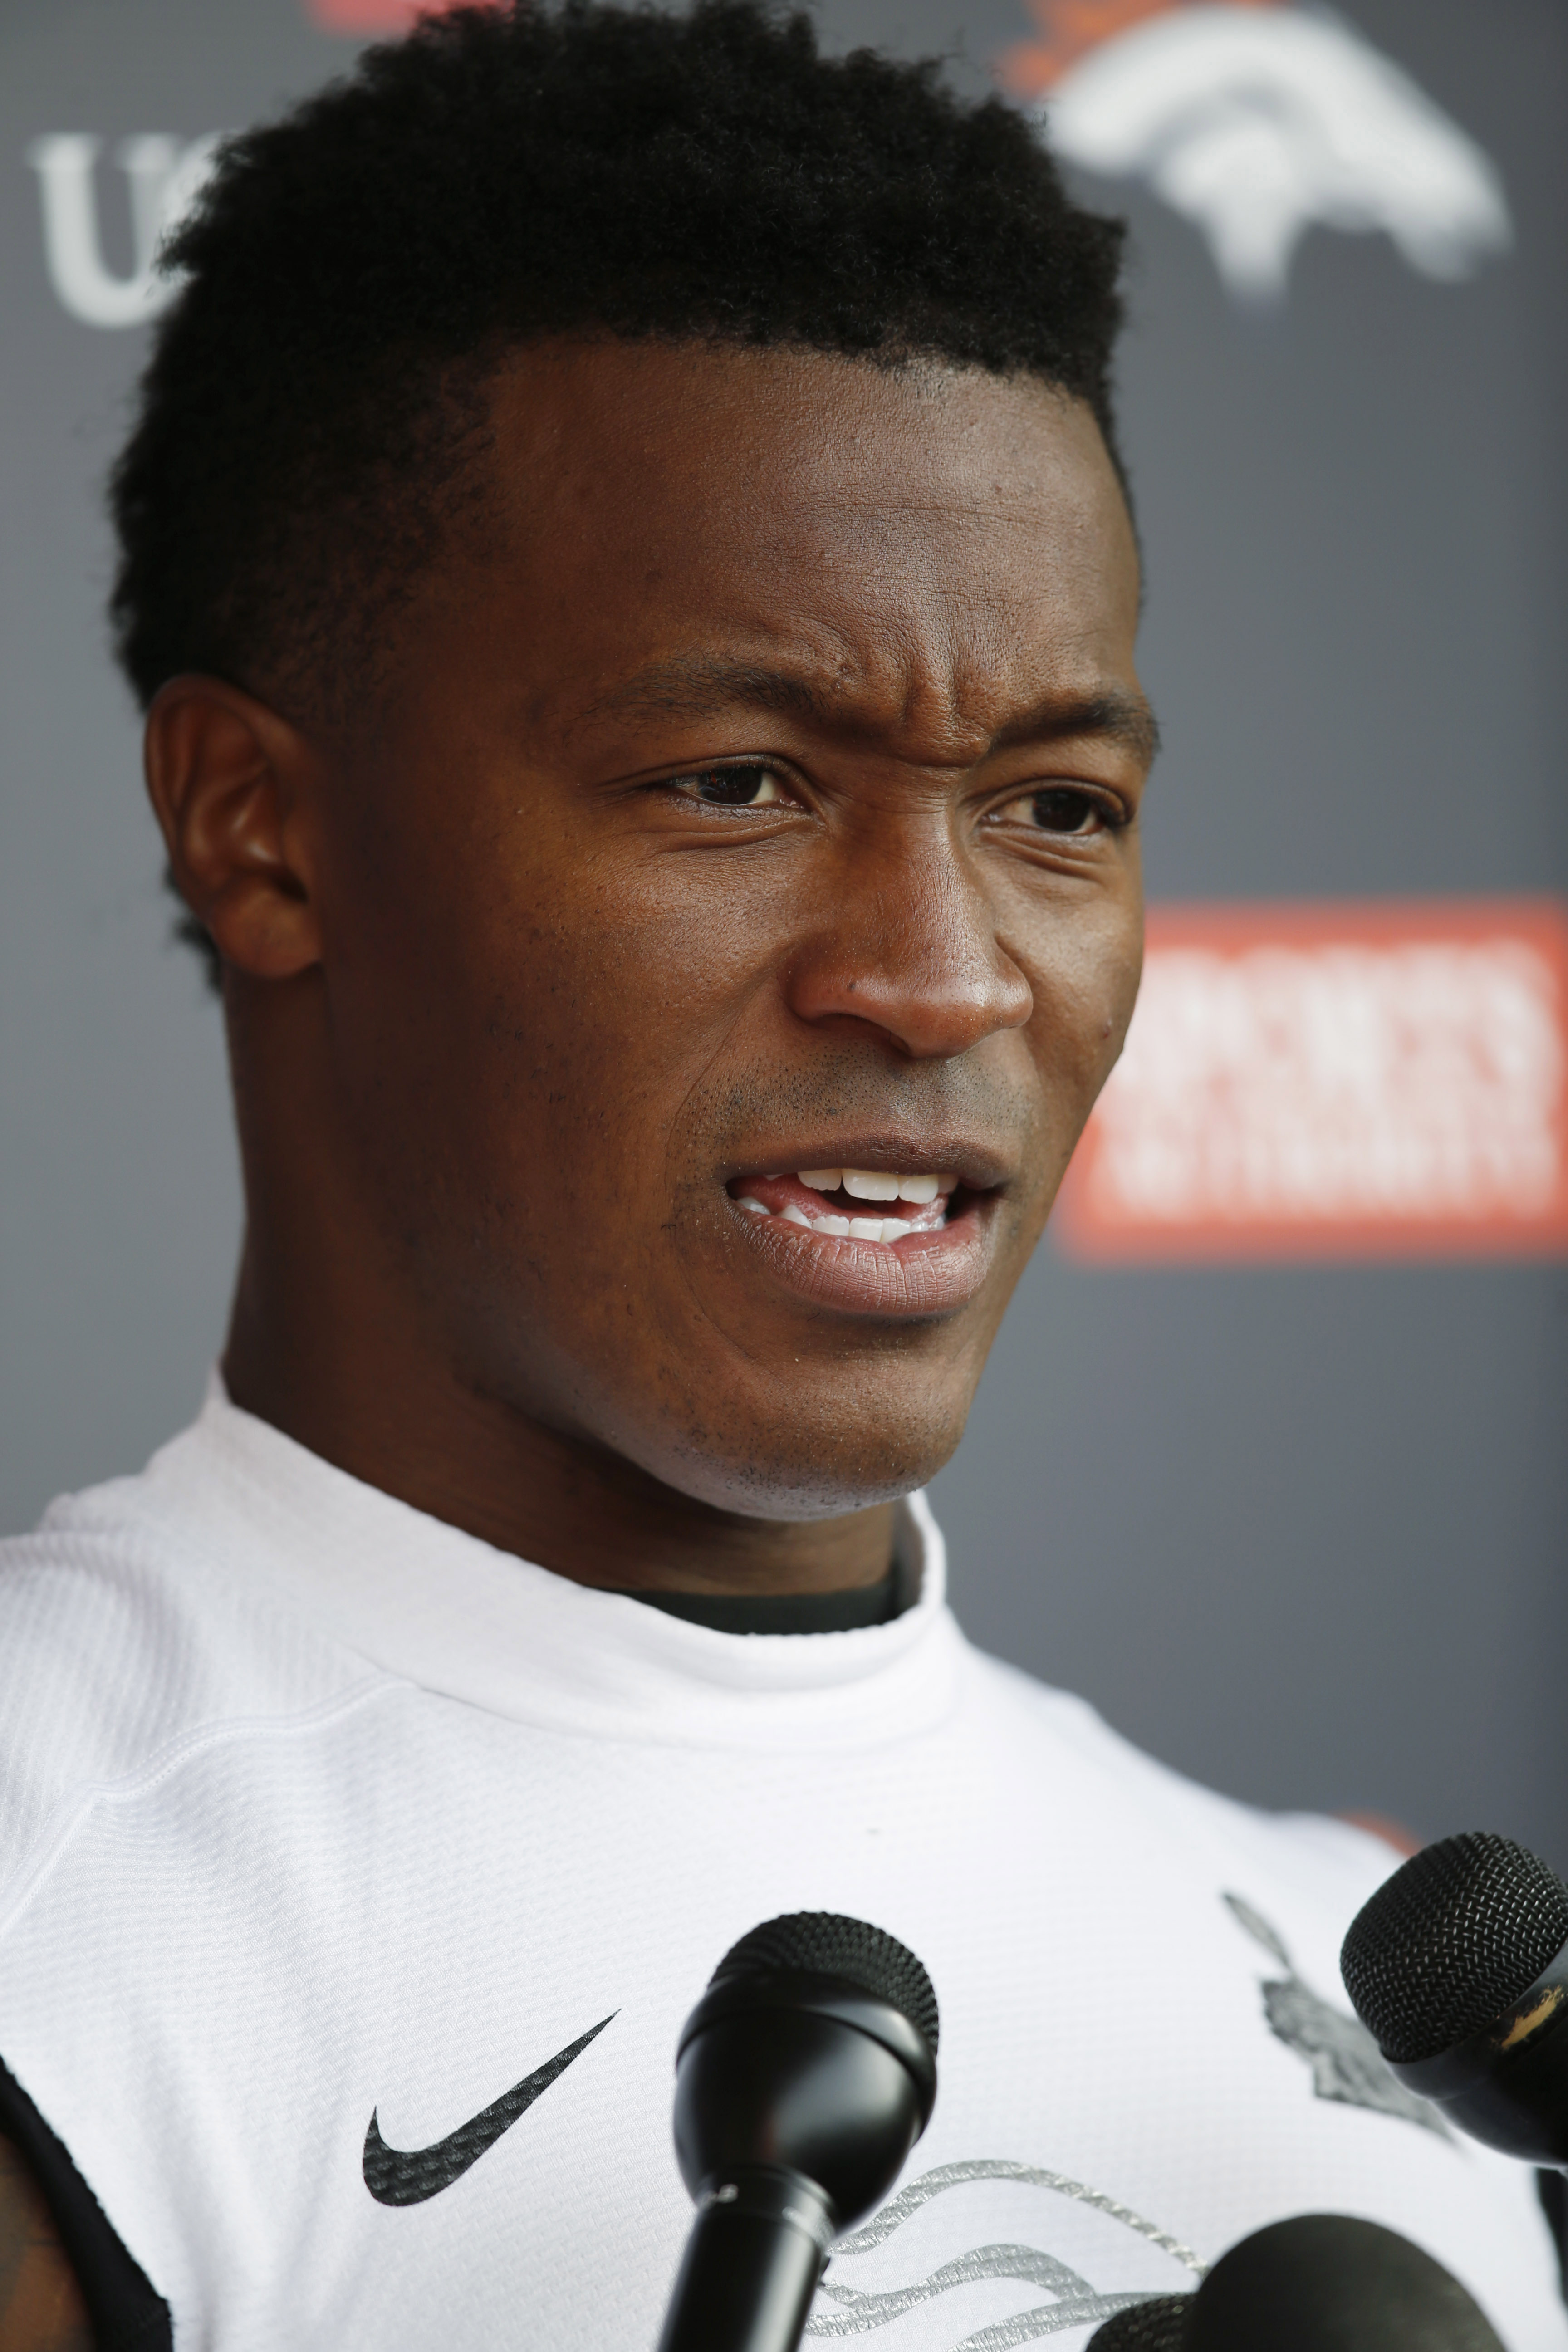 FILE - In this Wednesday, Nov. 4, 2015, file photograph, Denver Broncos wide receiver Demaryius Thomas talks to reporters after NFL practice session at the team's headquarters in Englewood, Colo. Thomas, who had hoped to have his mother, Katina Smith, fly